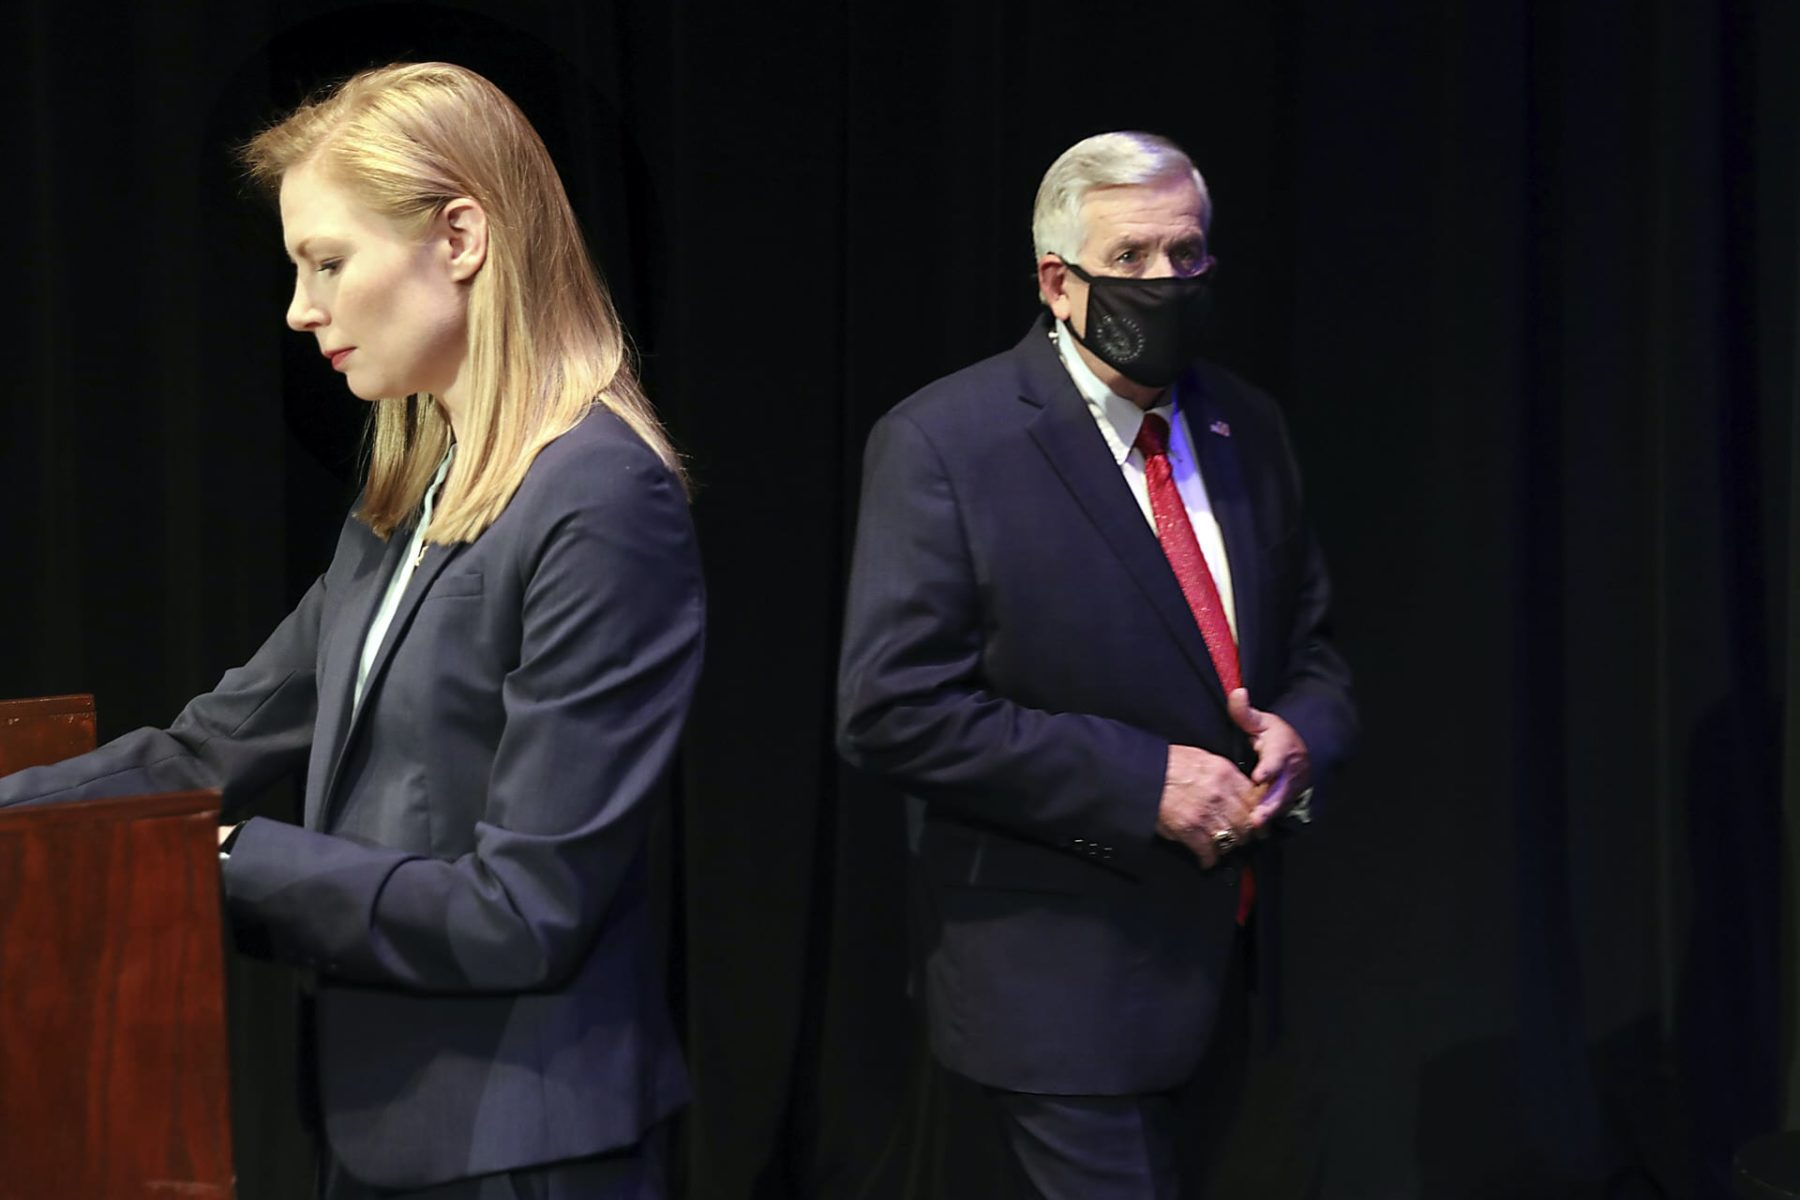 Missouri gubernatorial candidates, Gov. Mike Parson, and State Auditor Nicole Galloway are seen onstage before the Missouri gubernatorial debate at the Missouri Theatre on Friday, Oct. 9, 2020 in Columbia, Missouri. (Robert Cohen/St. Louis Post-Dispatch via AP, Pool)